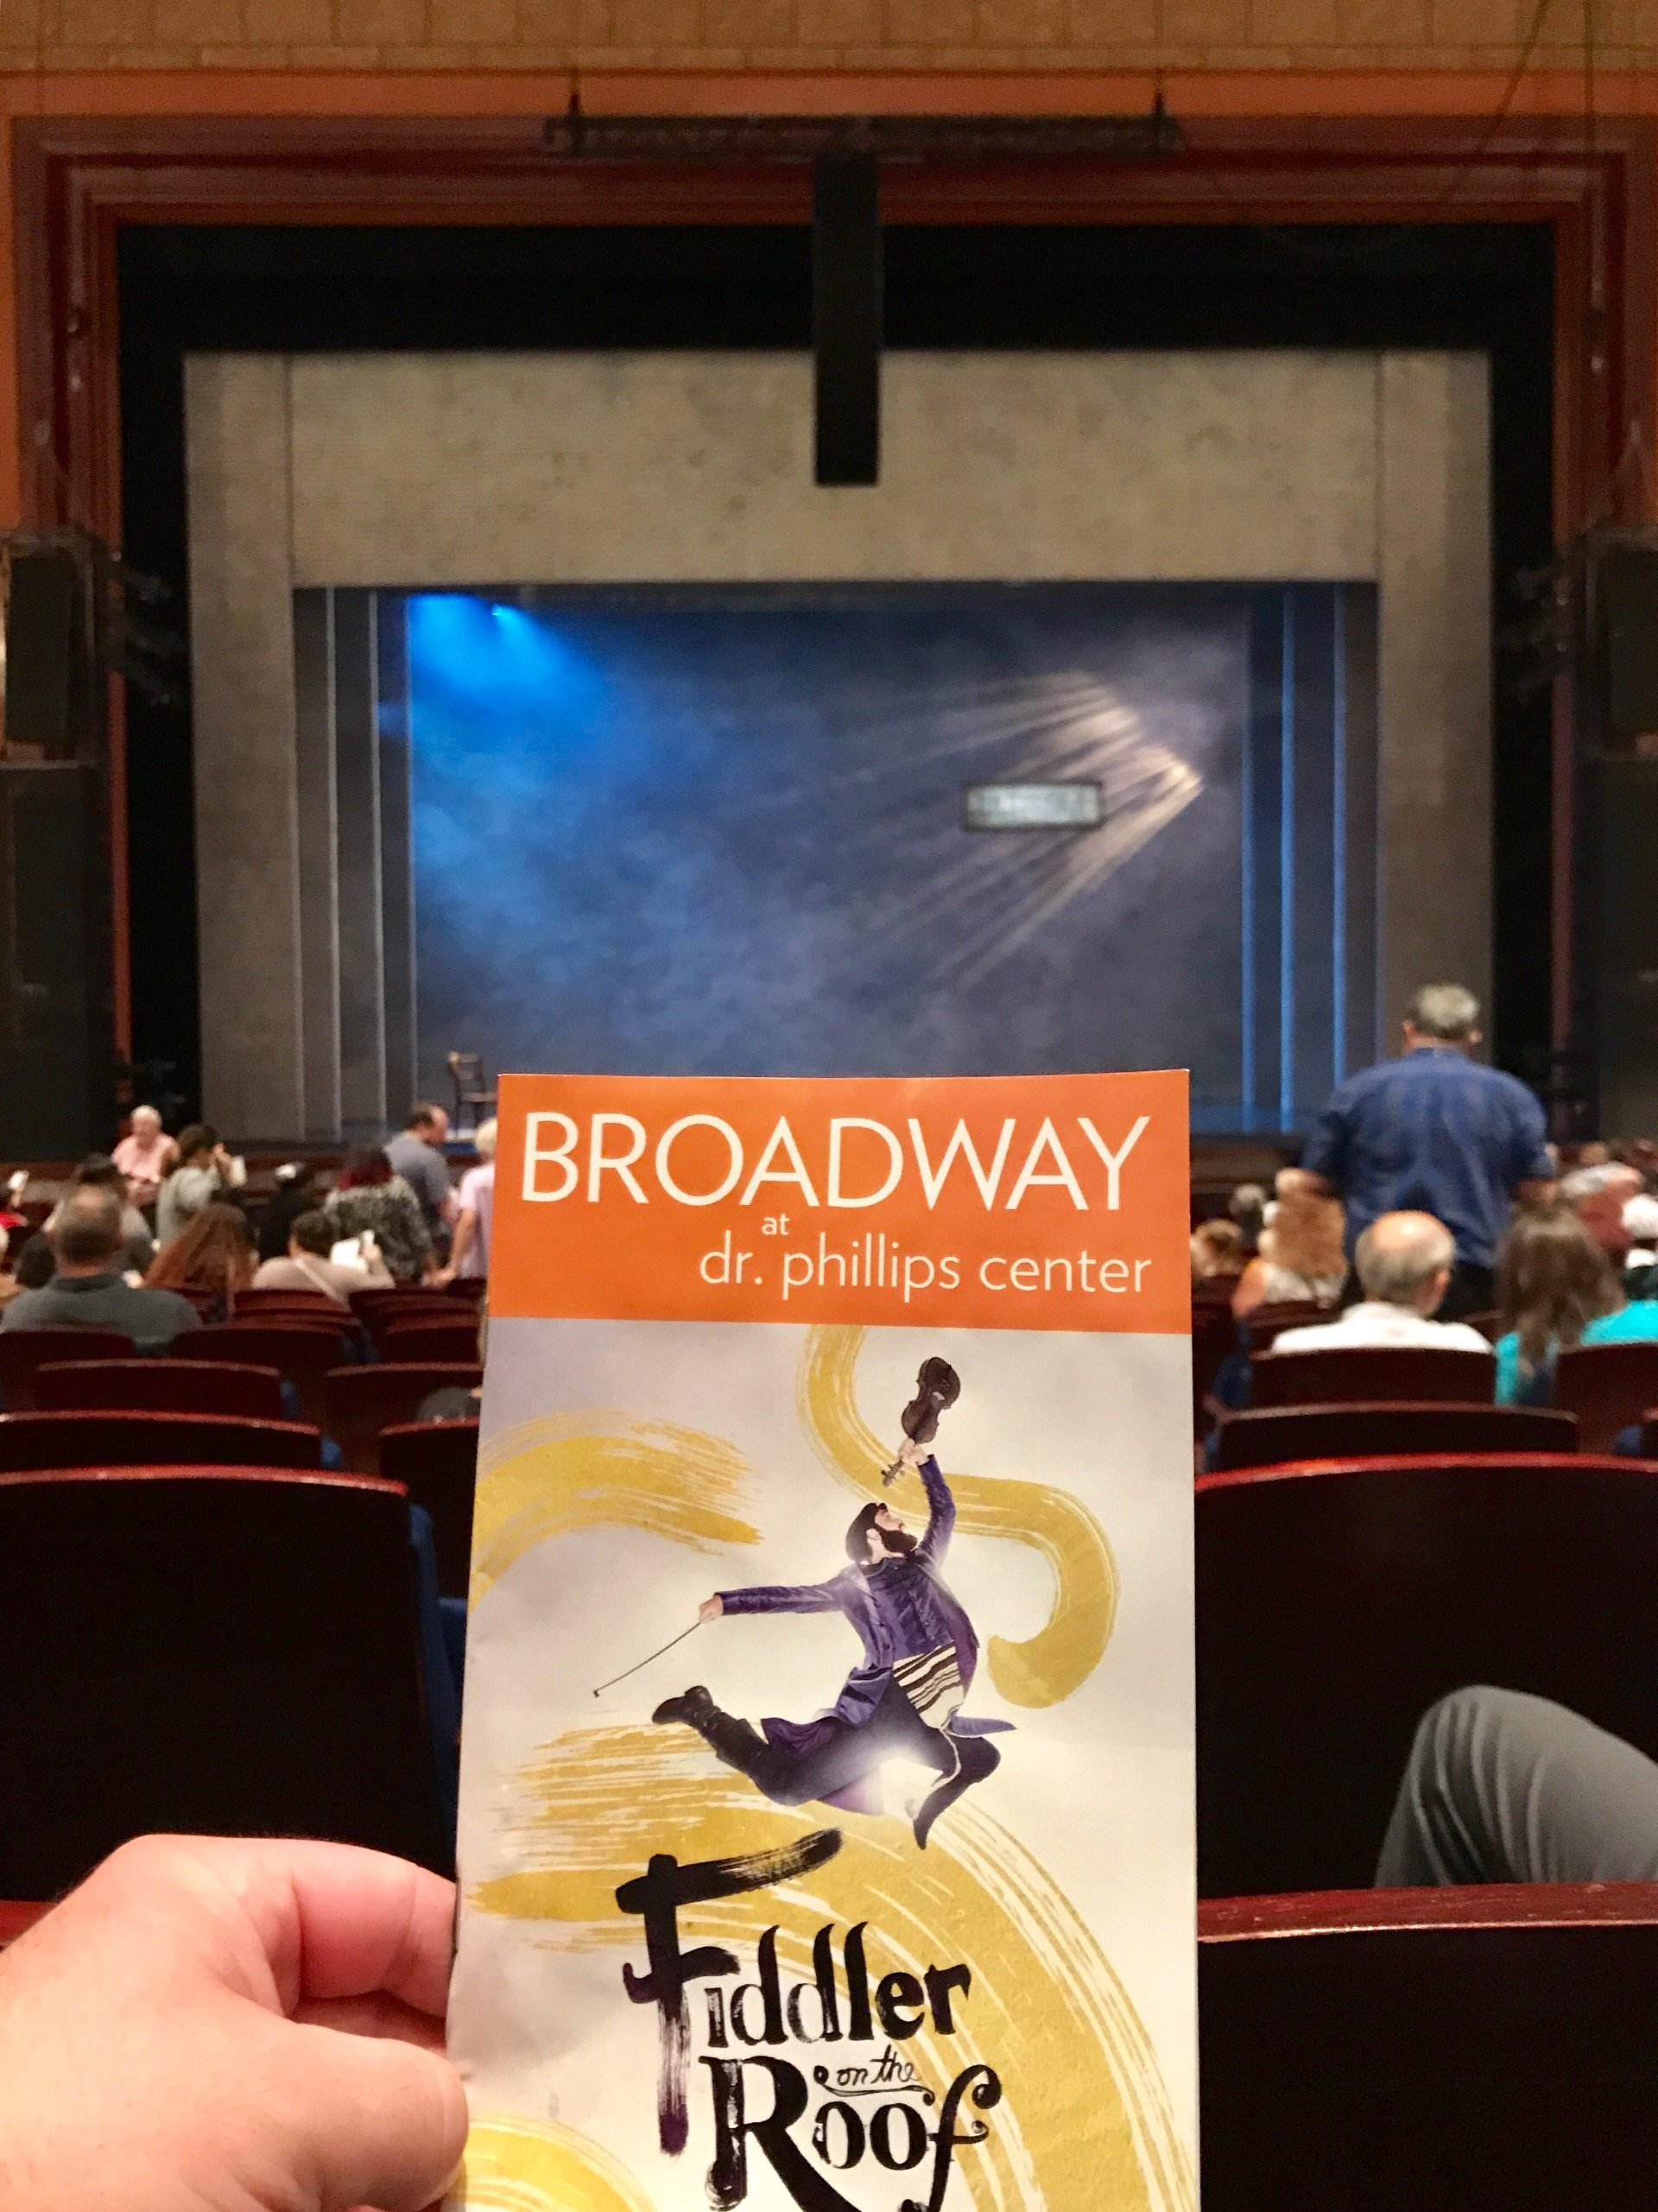 Walt Disney Theatre - Dr. Phillips Center Section Lower Orchestra, Center Row P Seat 109